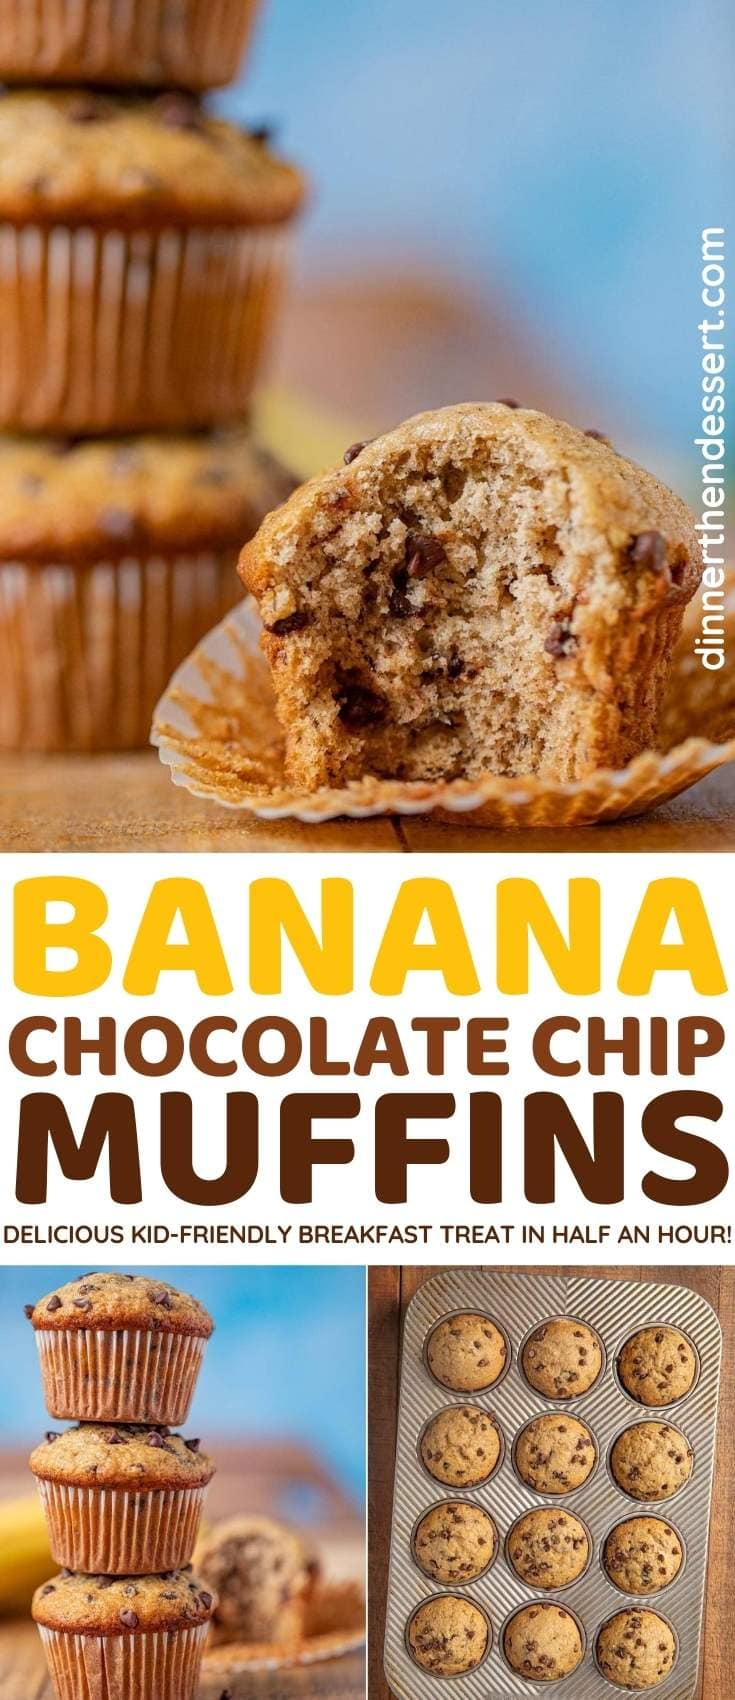 Banana Chocolate Chip Muffins collage